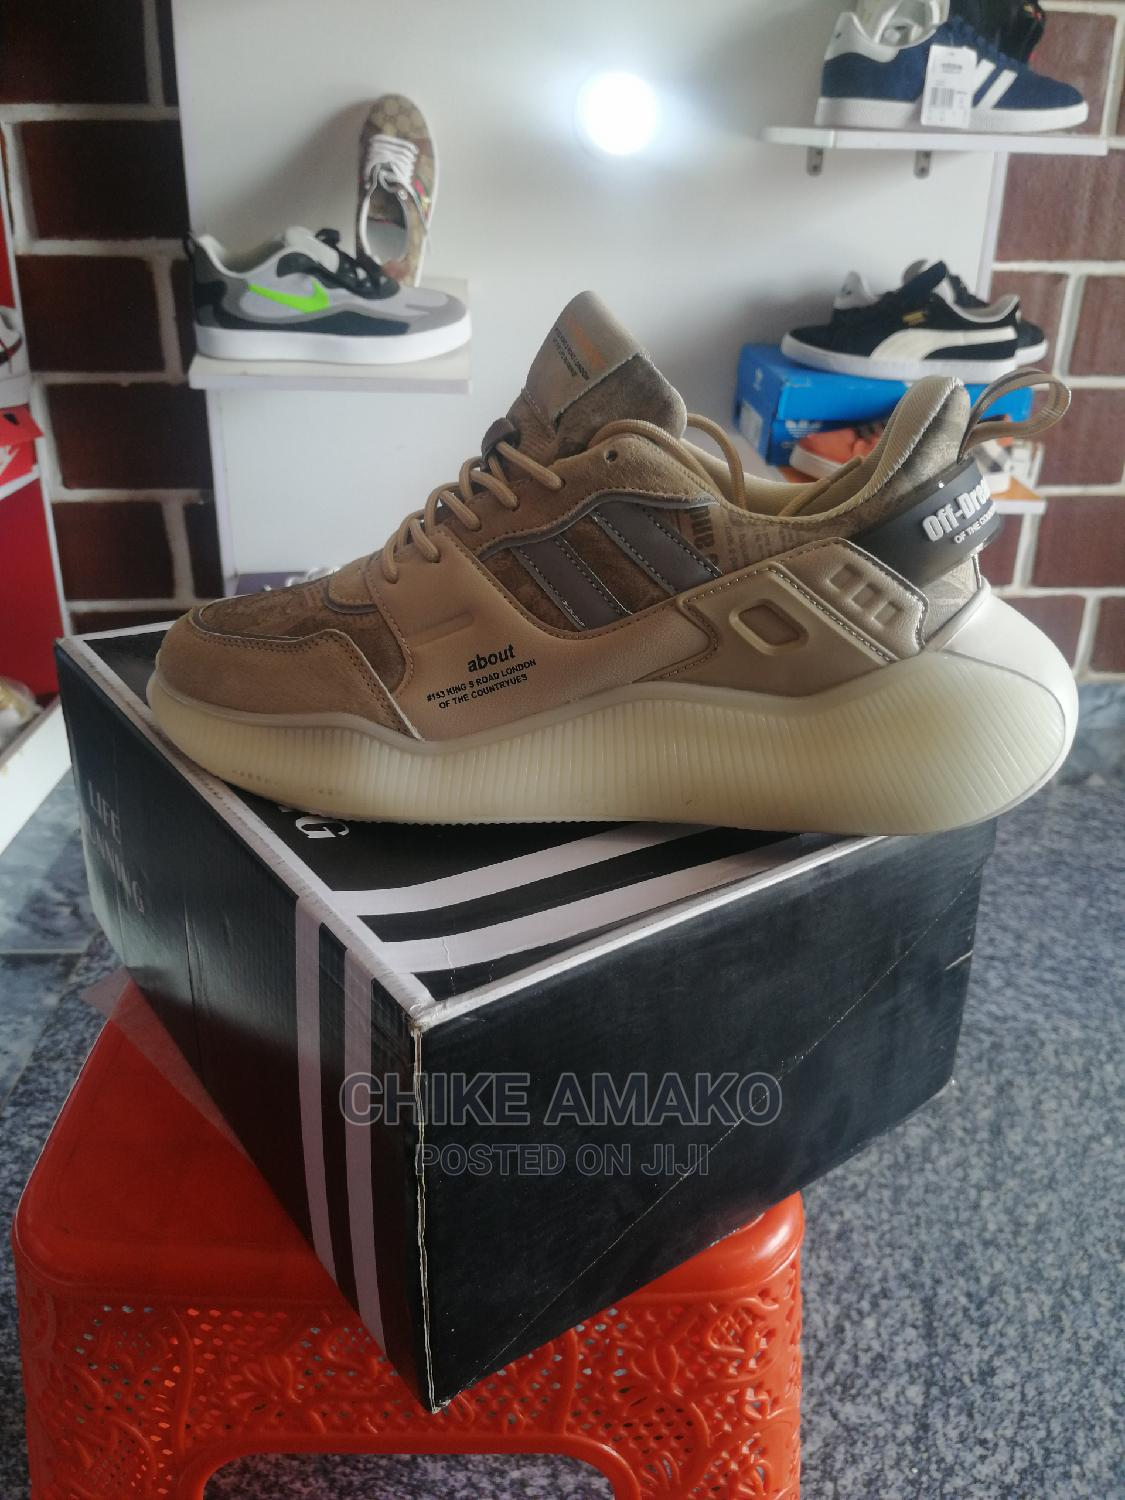 Top Notch Sneakers. High Quality on Discount